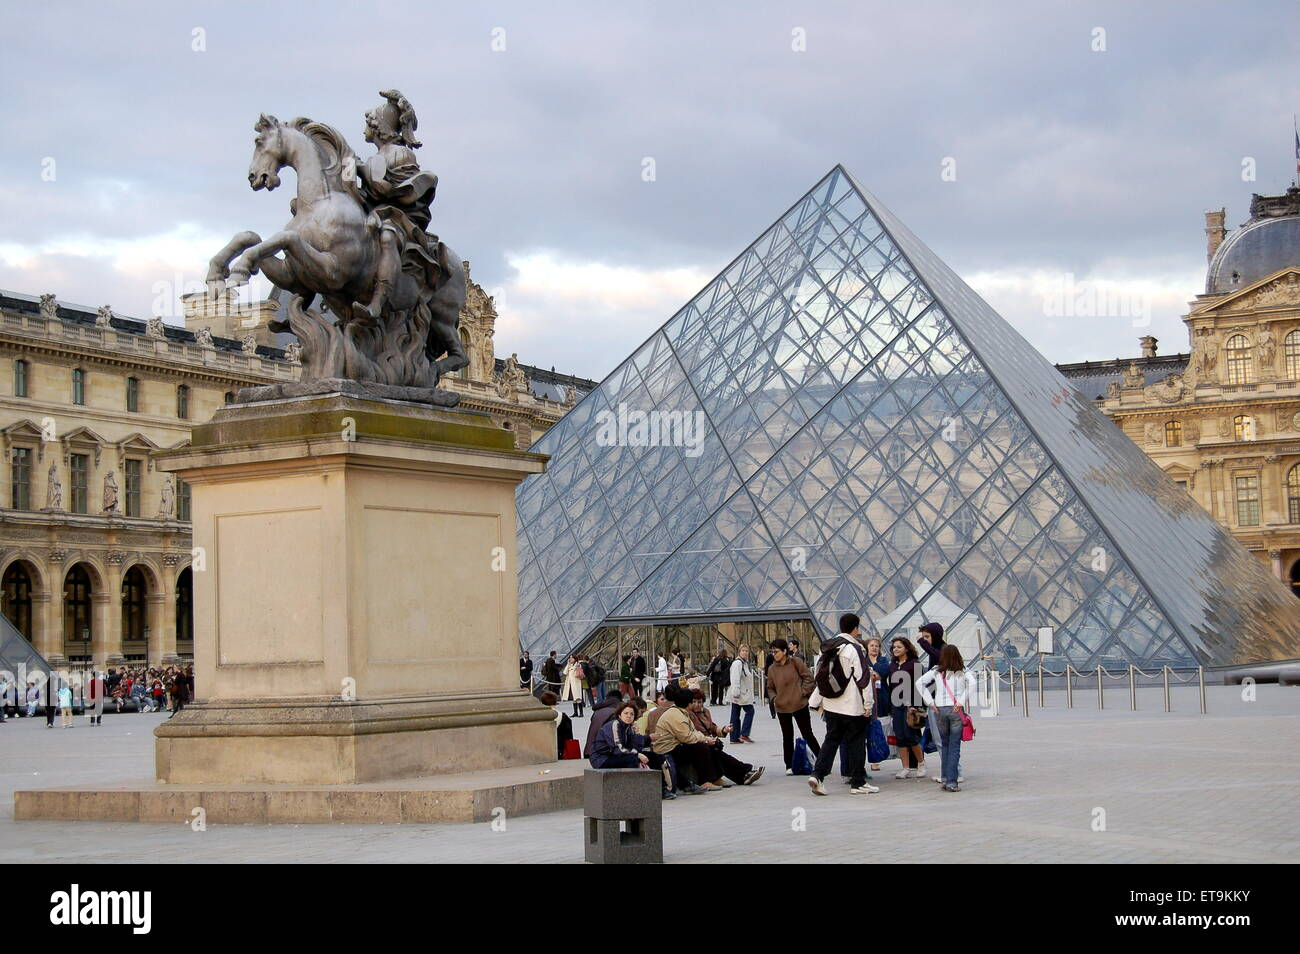 the-louvre-in-paris-the-famous-glass-pyramid-with-the-statue-of-king-ET9KKY.jpg